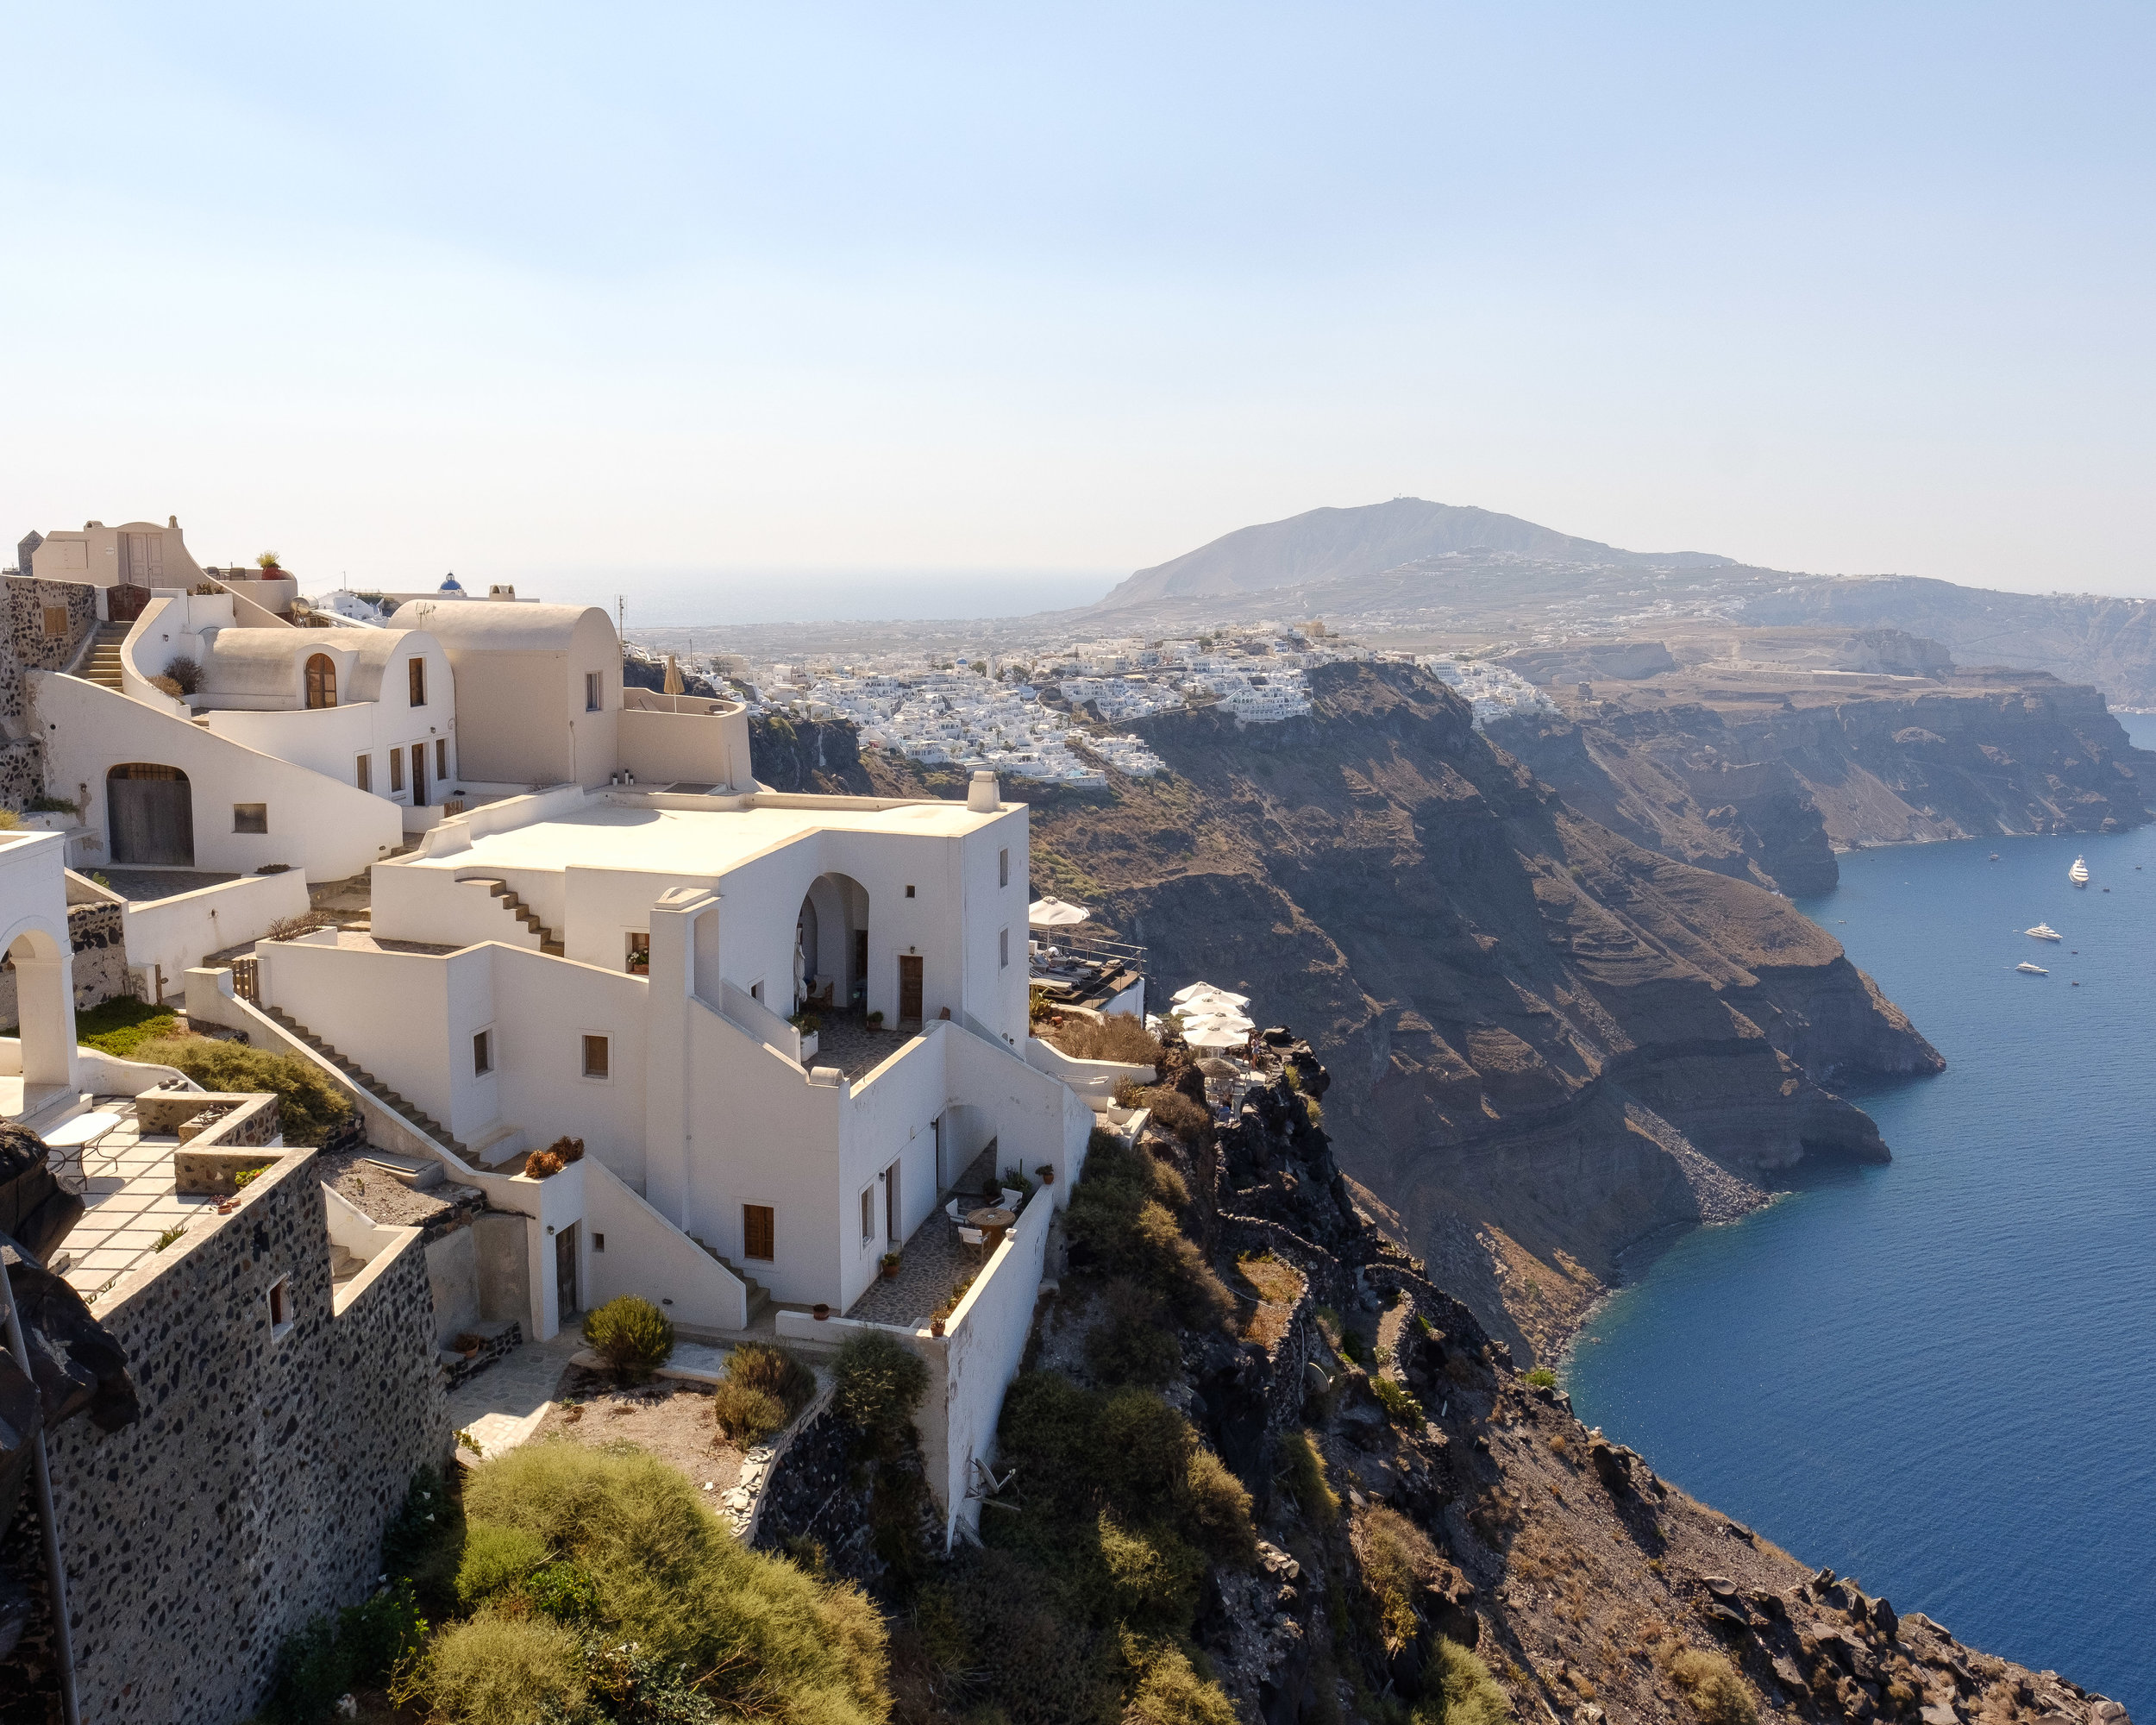 Looking back at Fira from a little further up the hike.